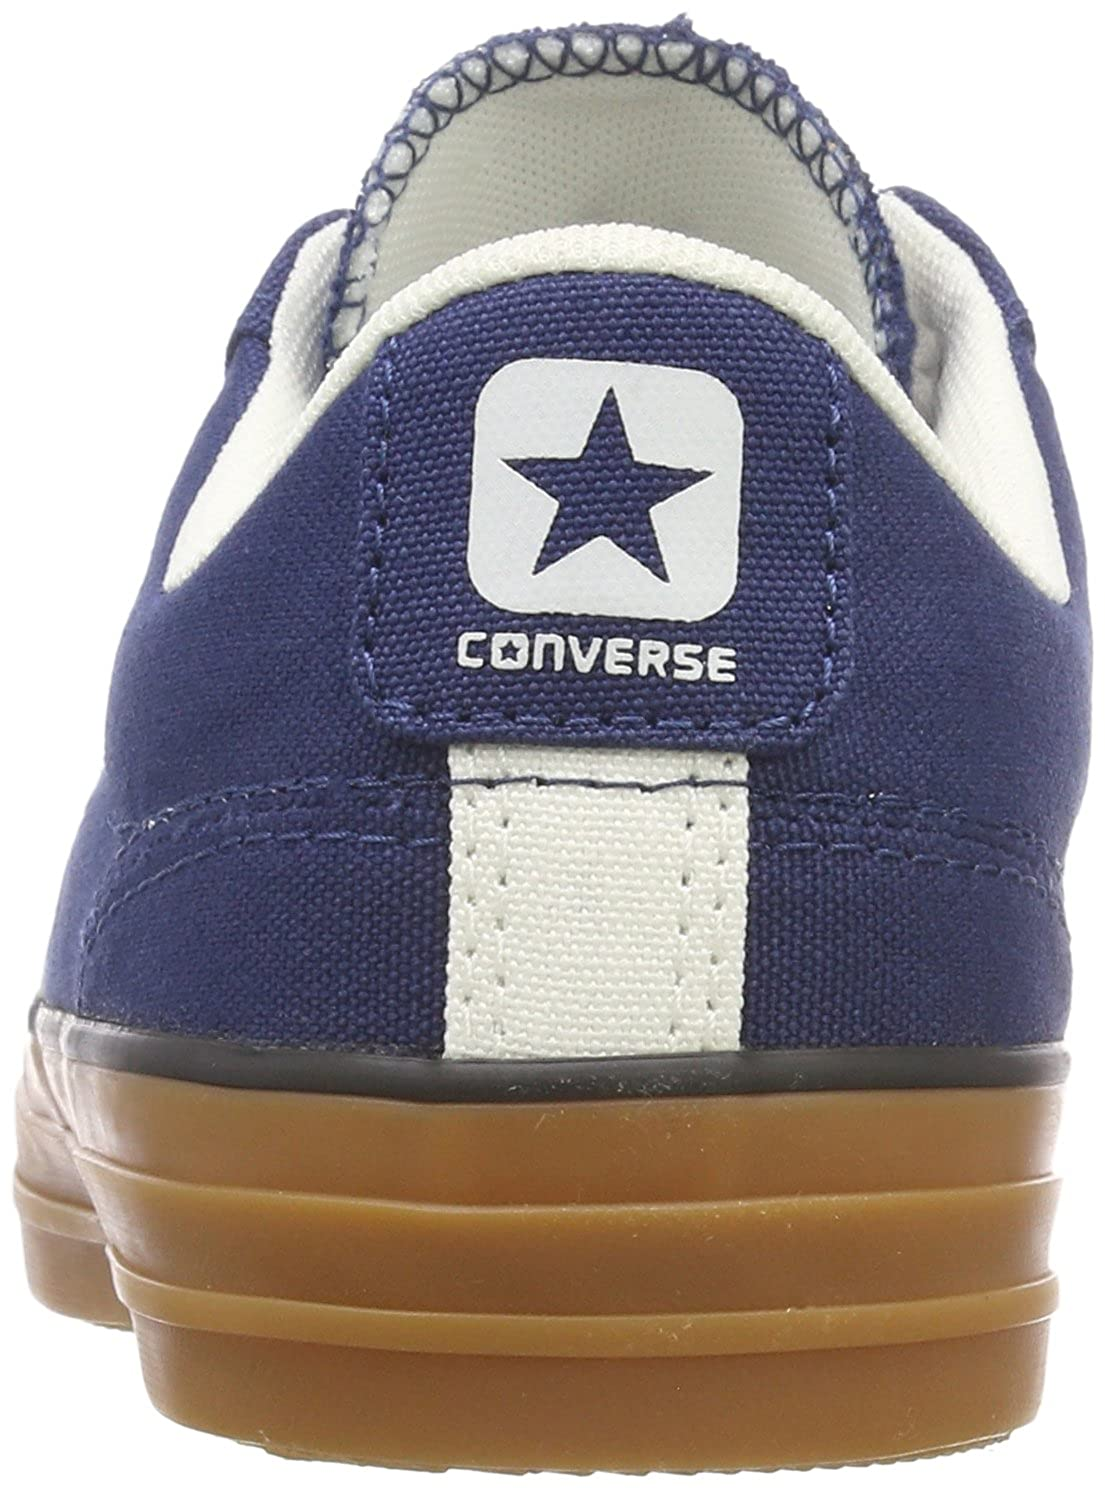 6881cb7c6811 Converse Unisex Adults  Star Player OX Navy EGRET Honey Trainers ...